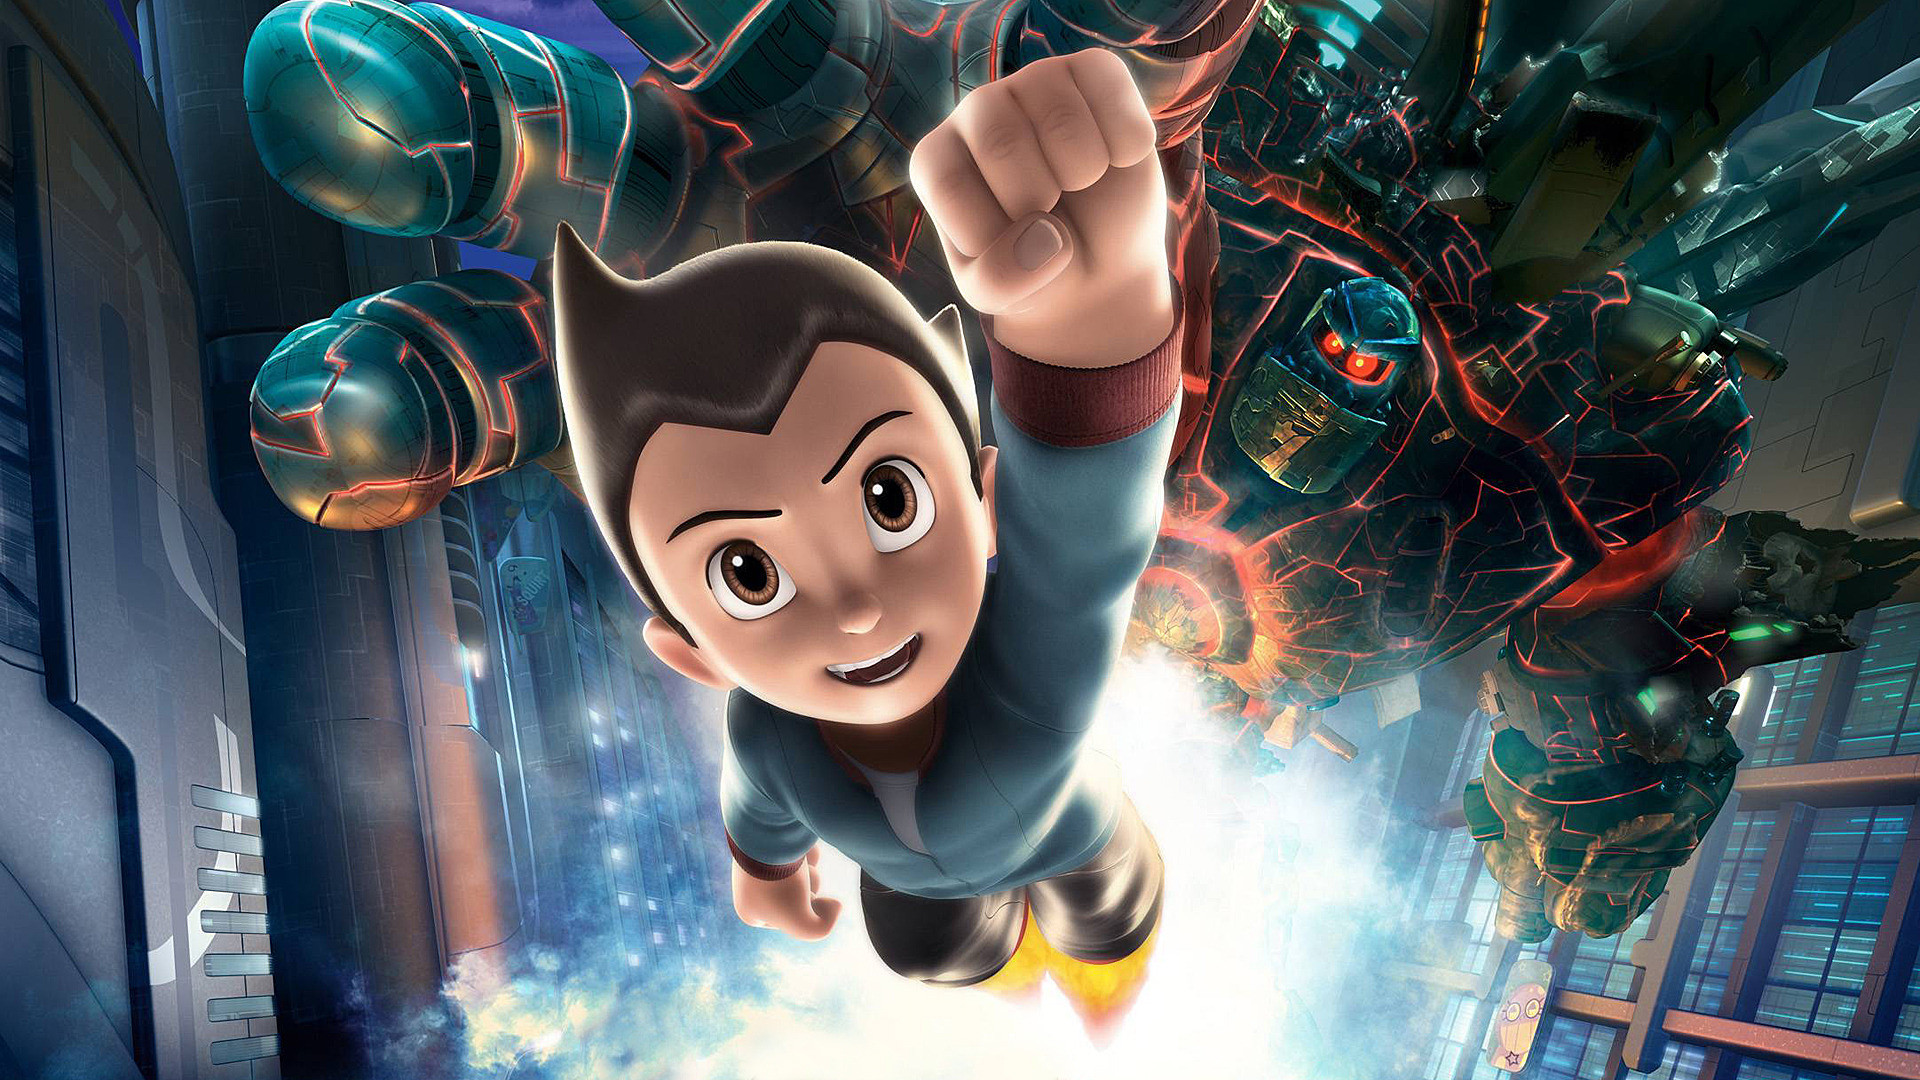 Astro Boy Wallpapers HD Wallpapers 1920x1080